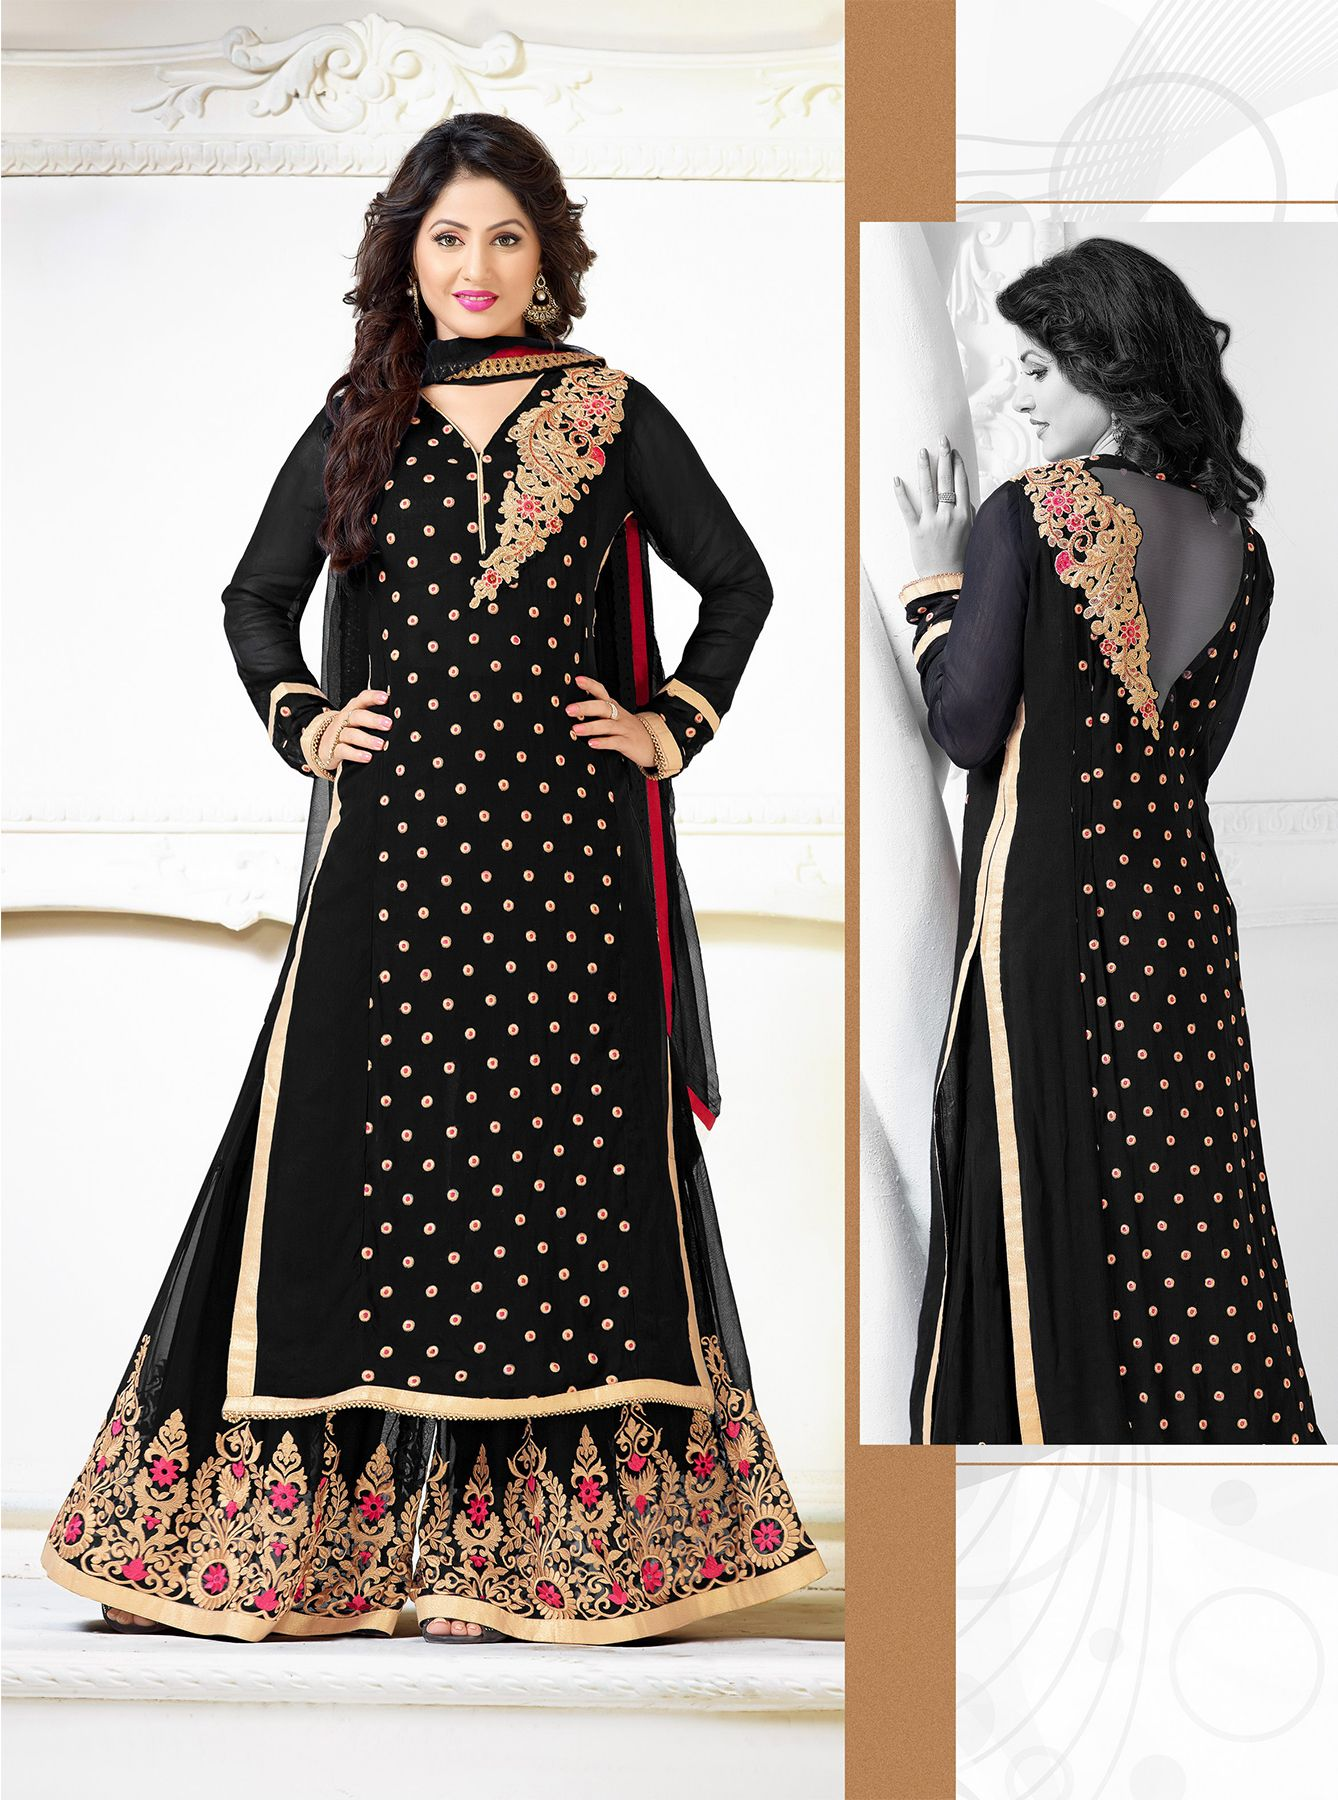 Heena ustaad bollywood collection pinterest shops bollywood